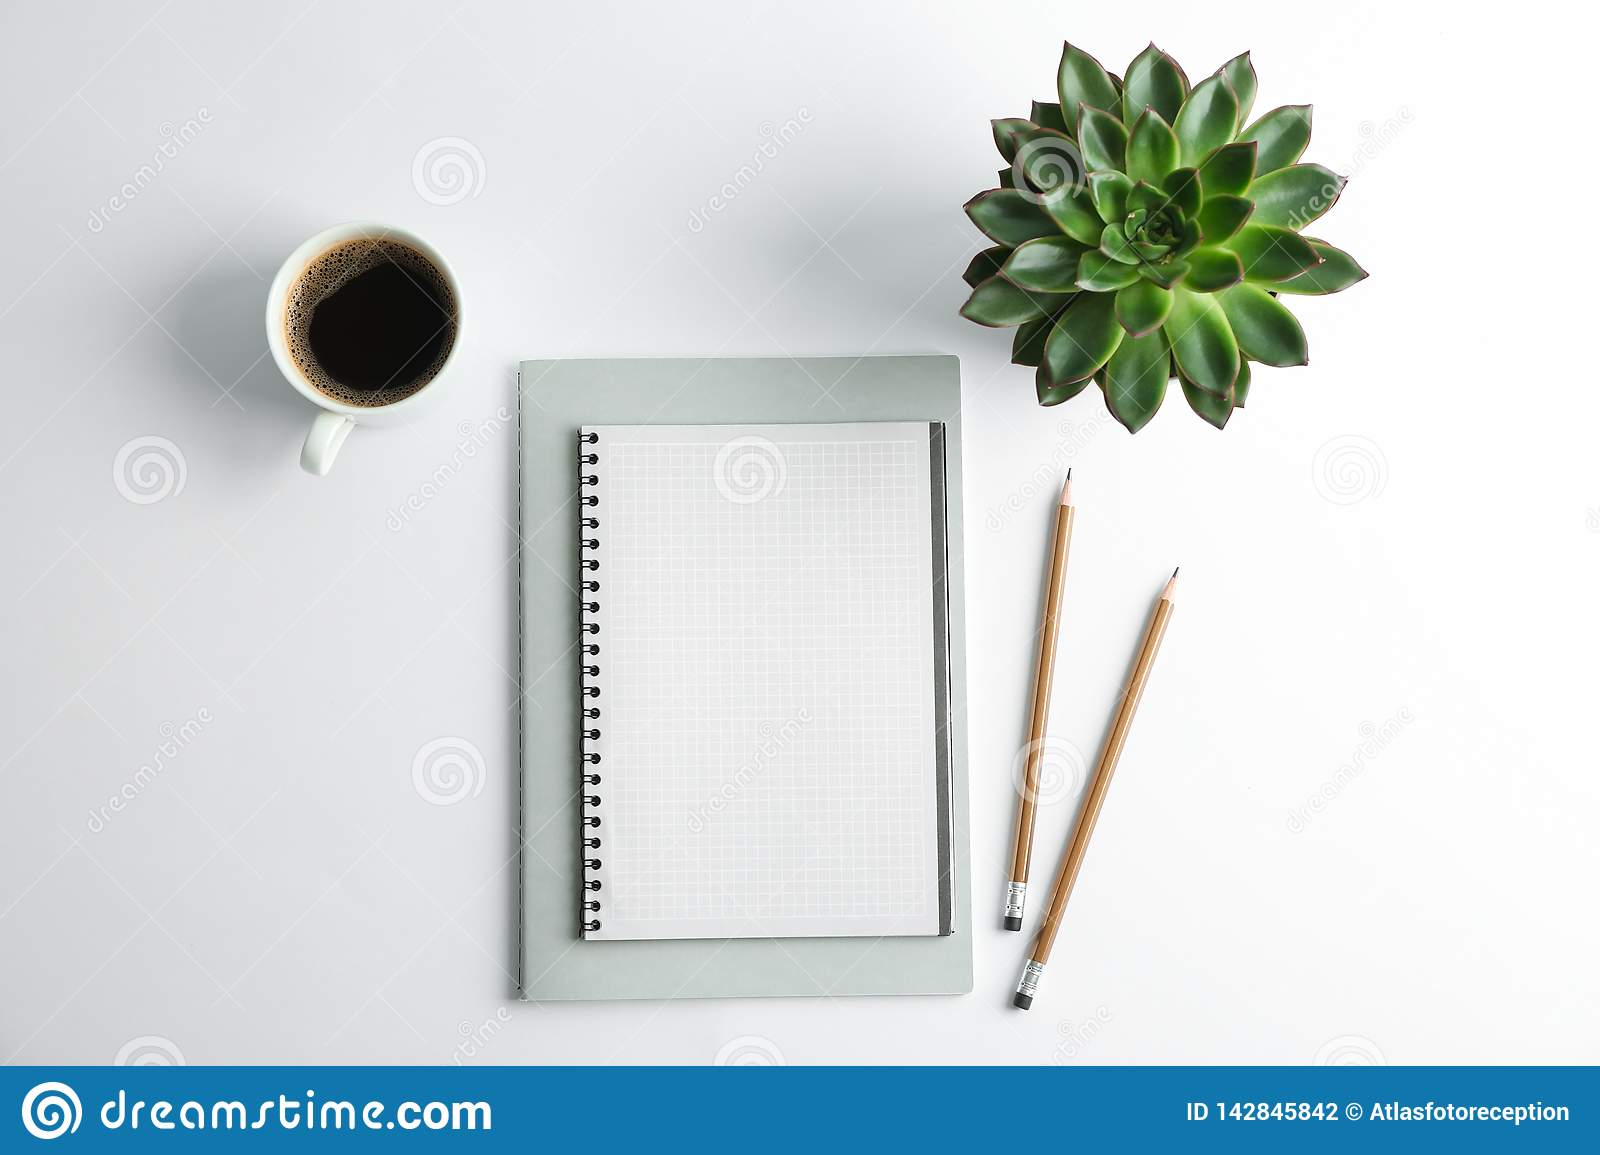 Copybooks, cup of coffee, pencils and succulent plant on white background